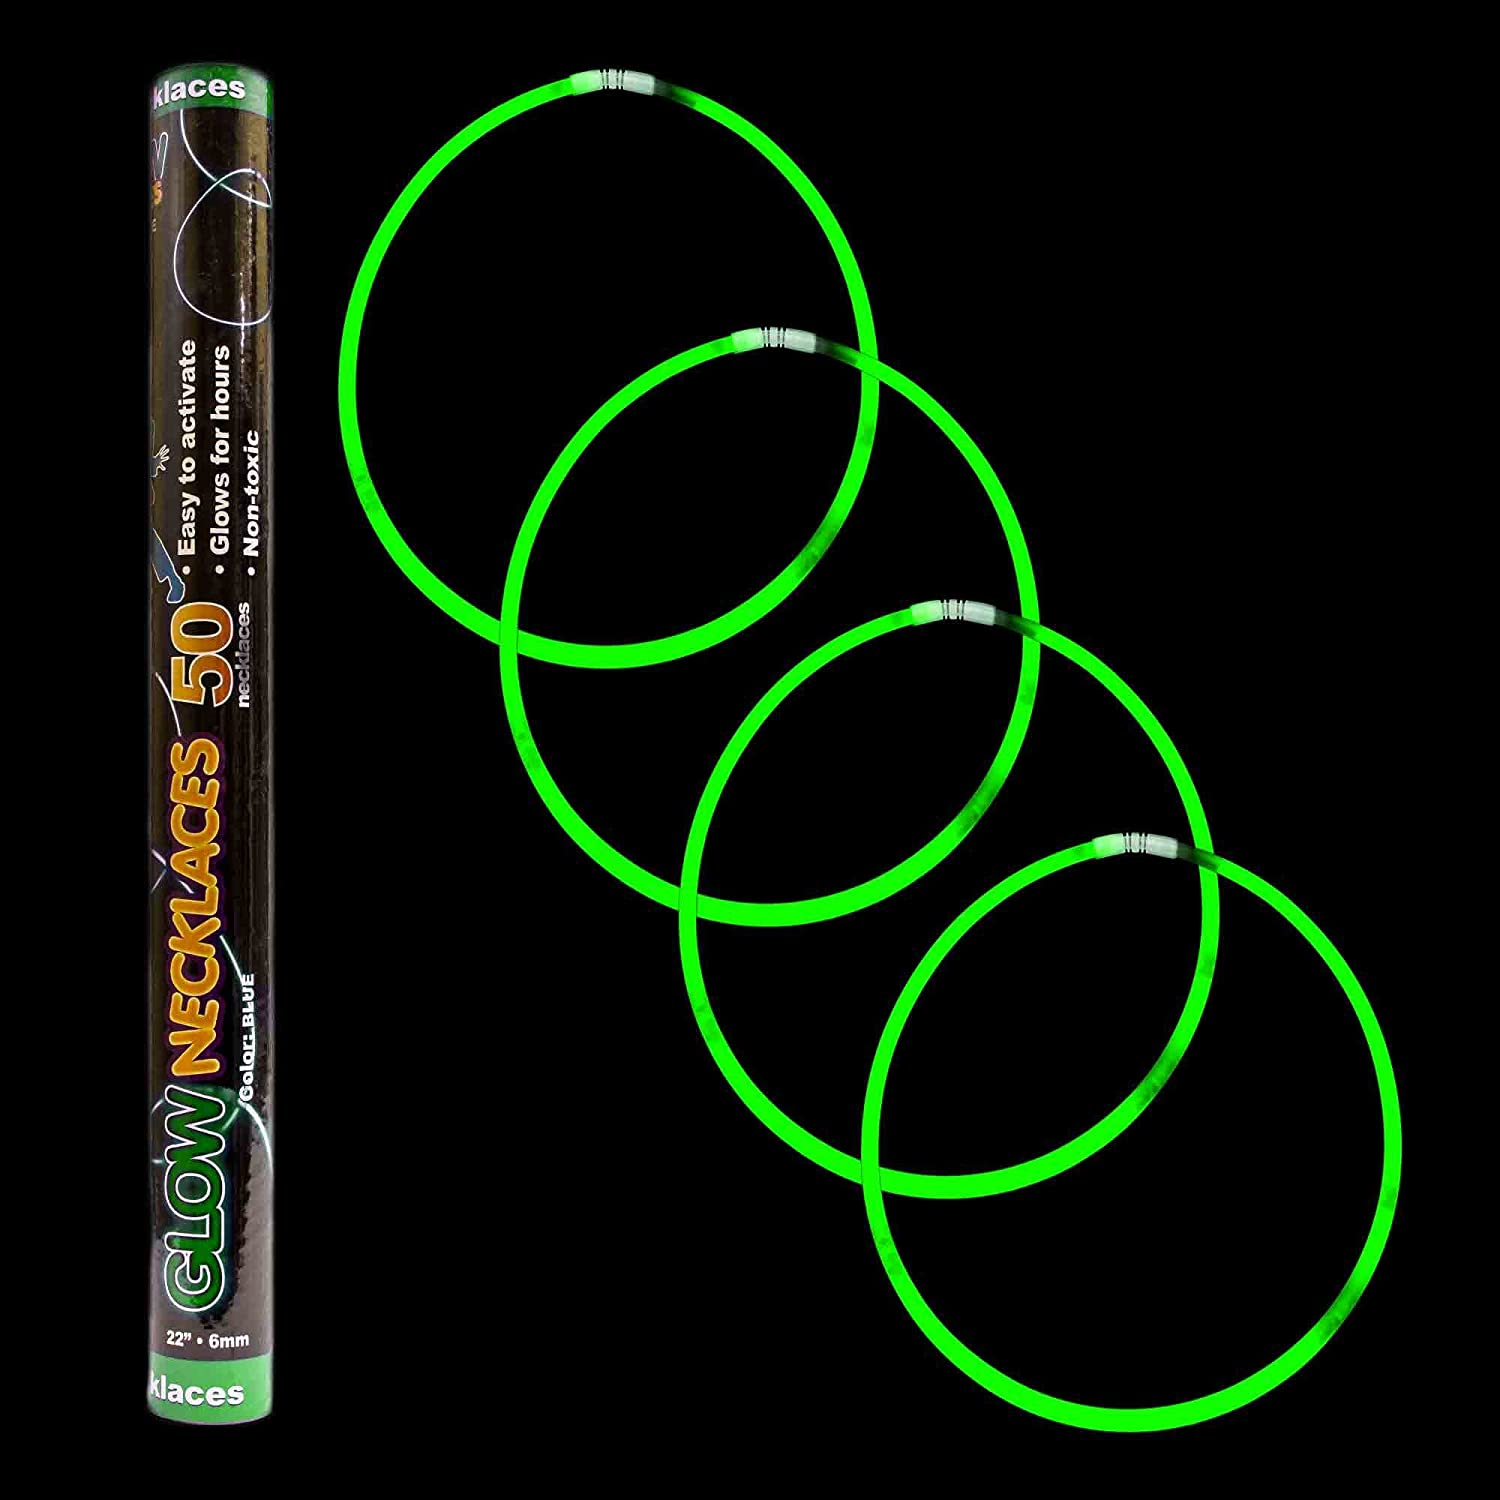 Fun Central S7 50ct 22 Inch Premium Glow Stick Necklaces Glow in the Dark Necklace for Neon Parties Glow in the Dark Parties Rave Parties Christmas Parties Halloween Parties New Year's Eve